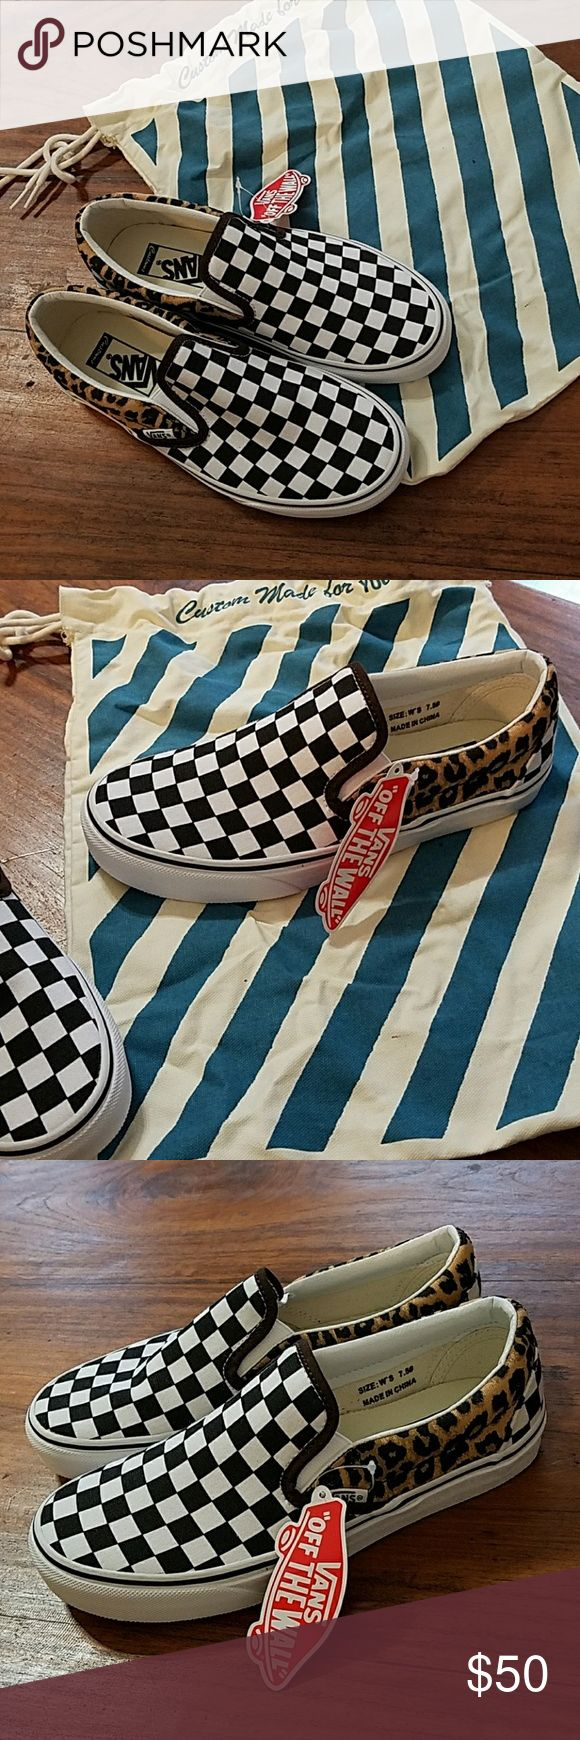 NWT Custom Vans Shoes Canvas Checkered Cheetah Custom Vans Slip-on Shoes Canvas with Checkered & Cheetah Prints.  Brand New with Tags, dustbag and original box Size 7.5 Very unusual. Very original. Vans Shoes Sneakers